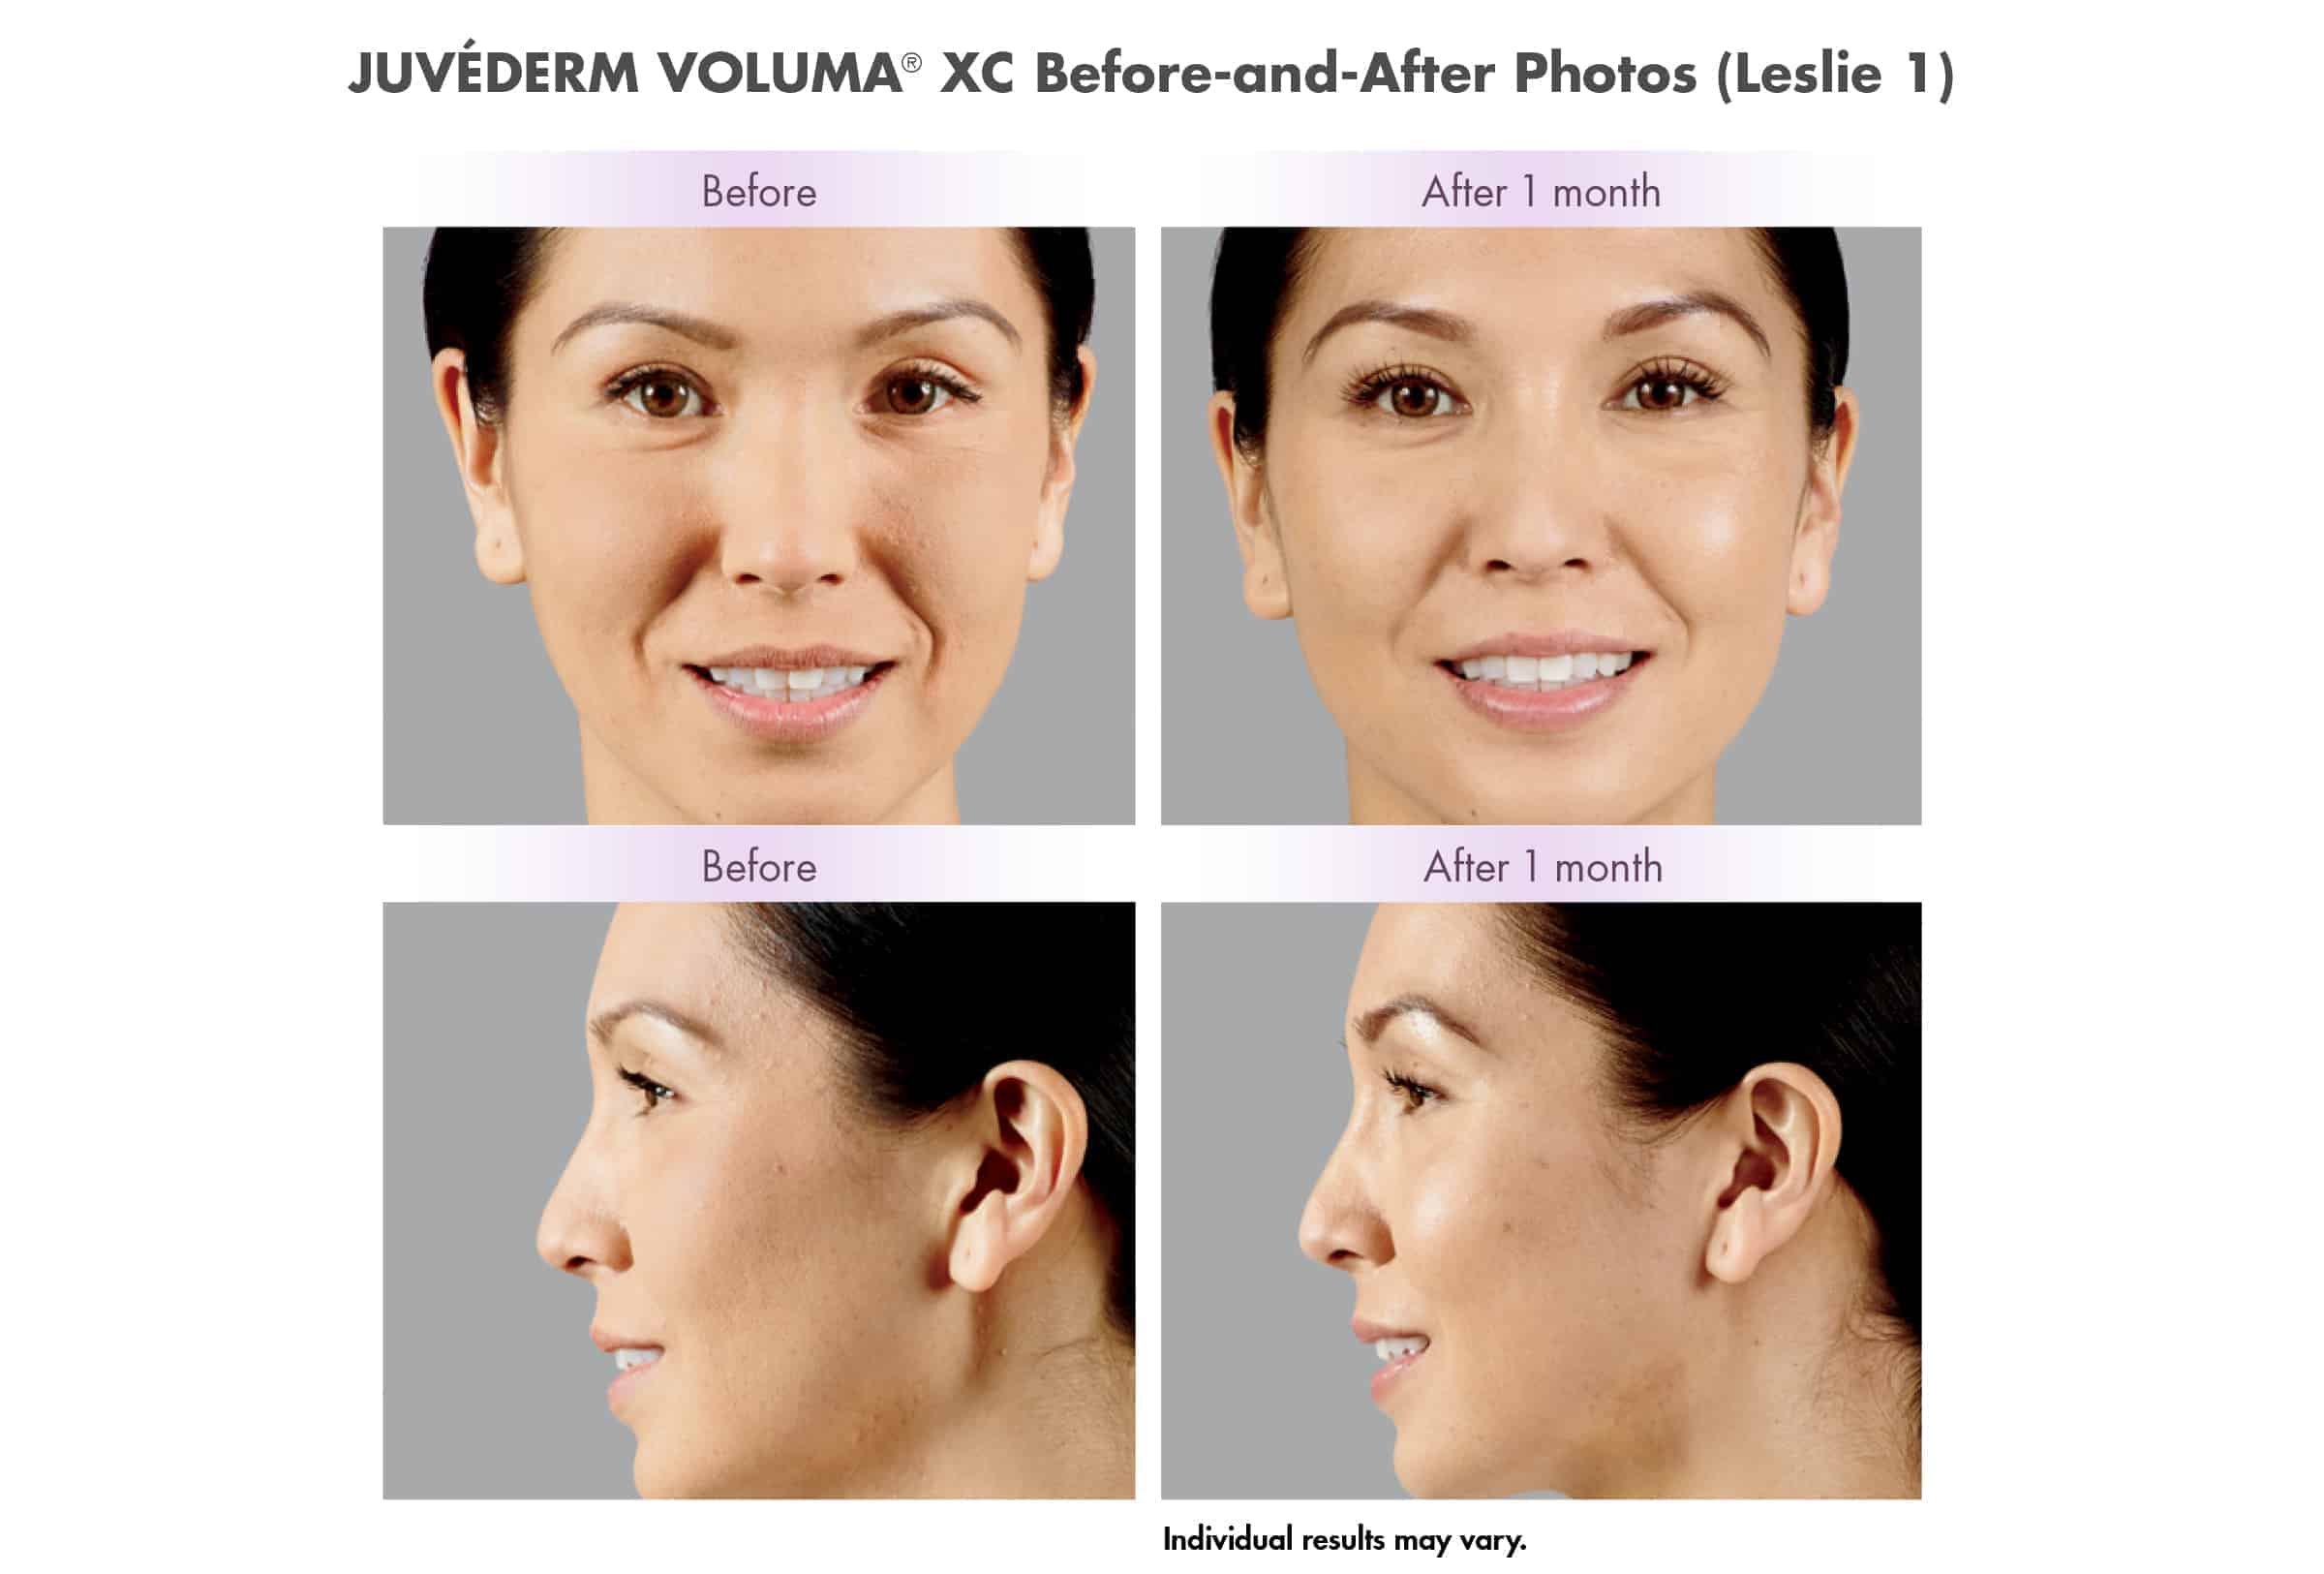 Juvederm Voluma XC Before & After Photos